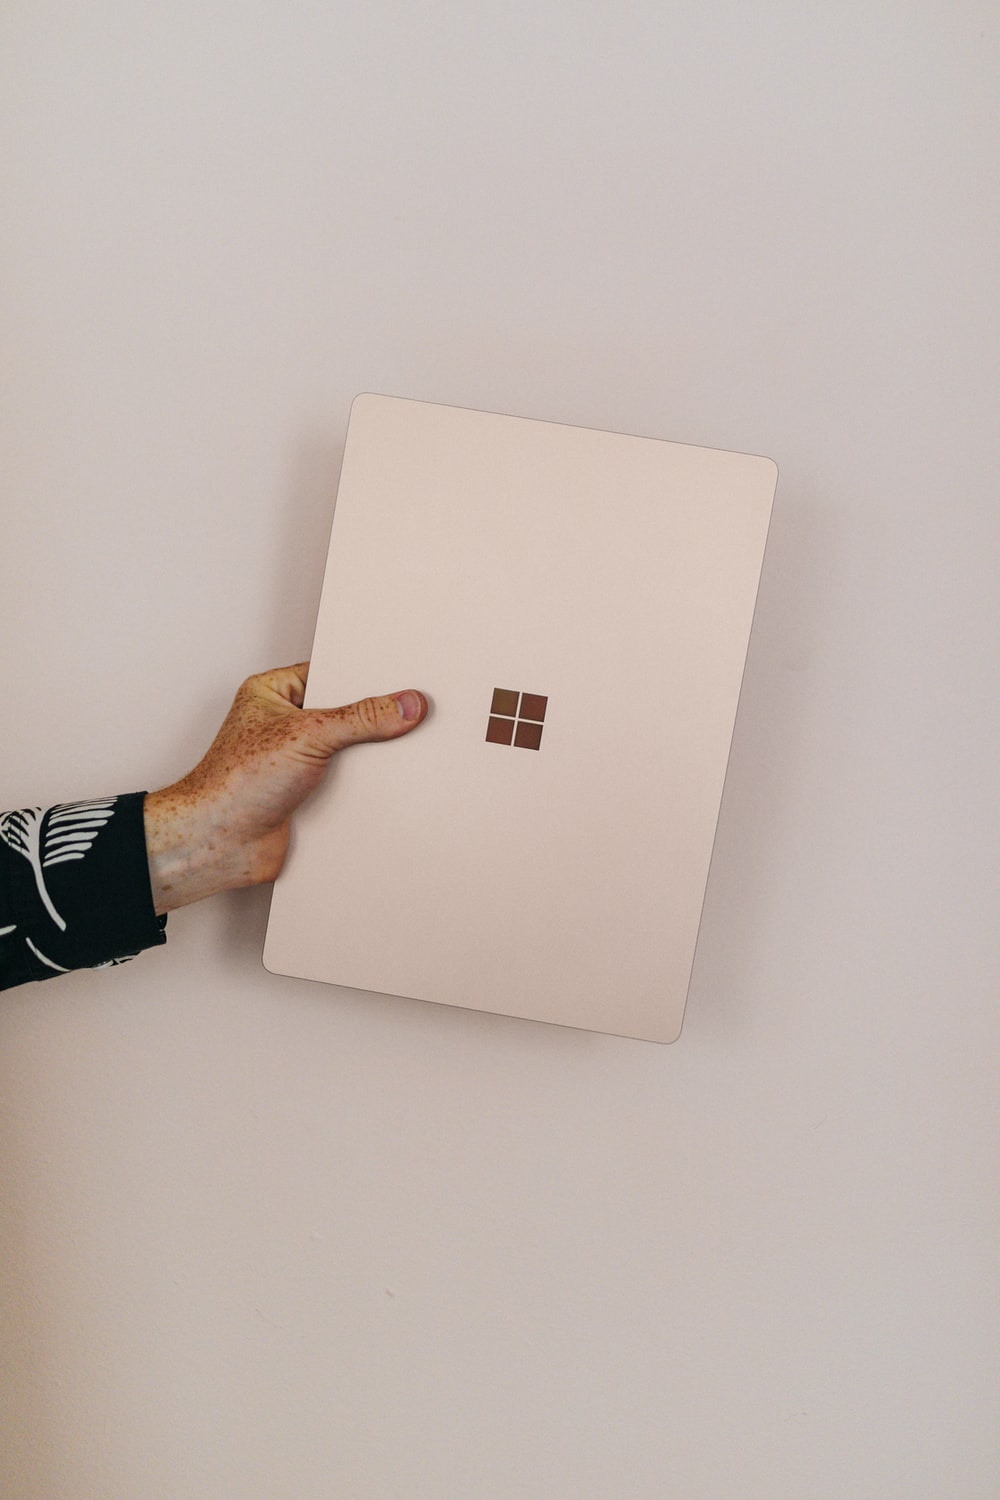 person holding sandstone microsoft Surface laptop laptop